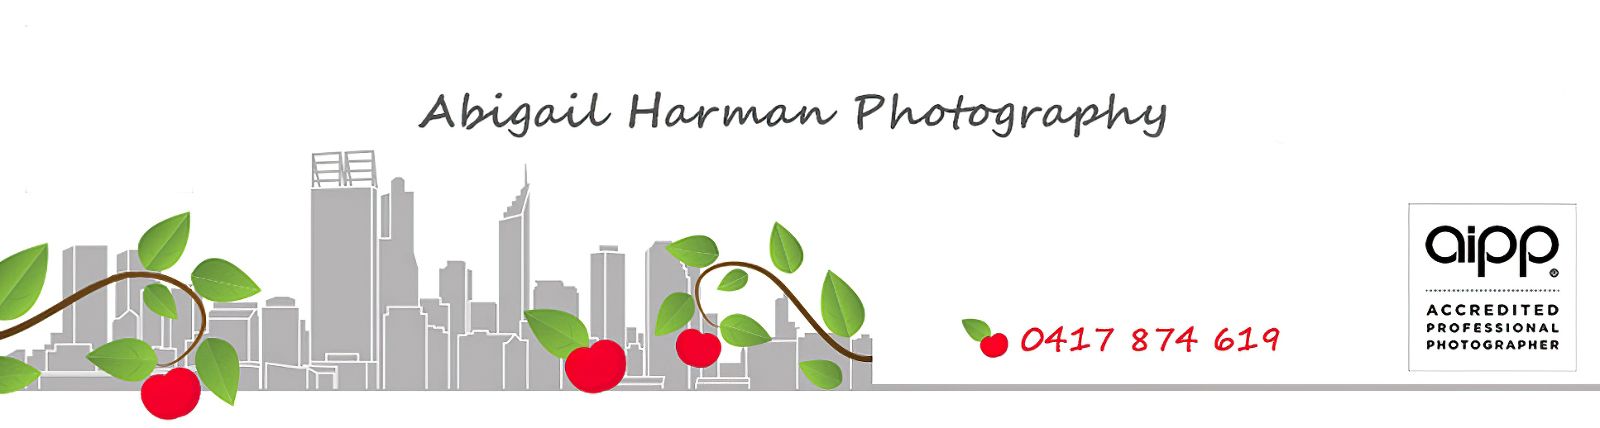 Abigail Harman Photography Perth